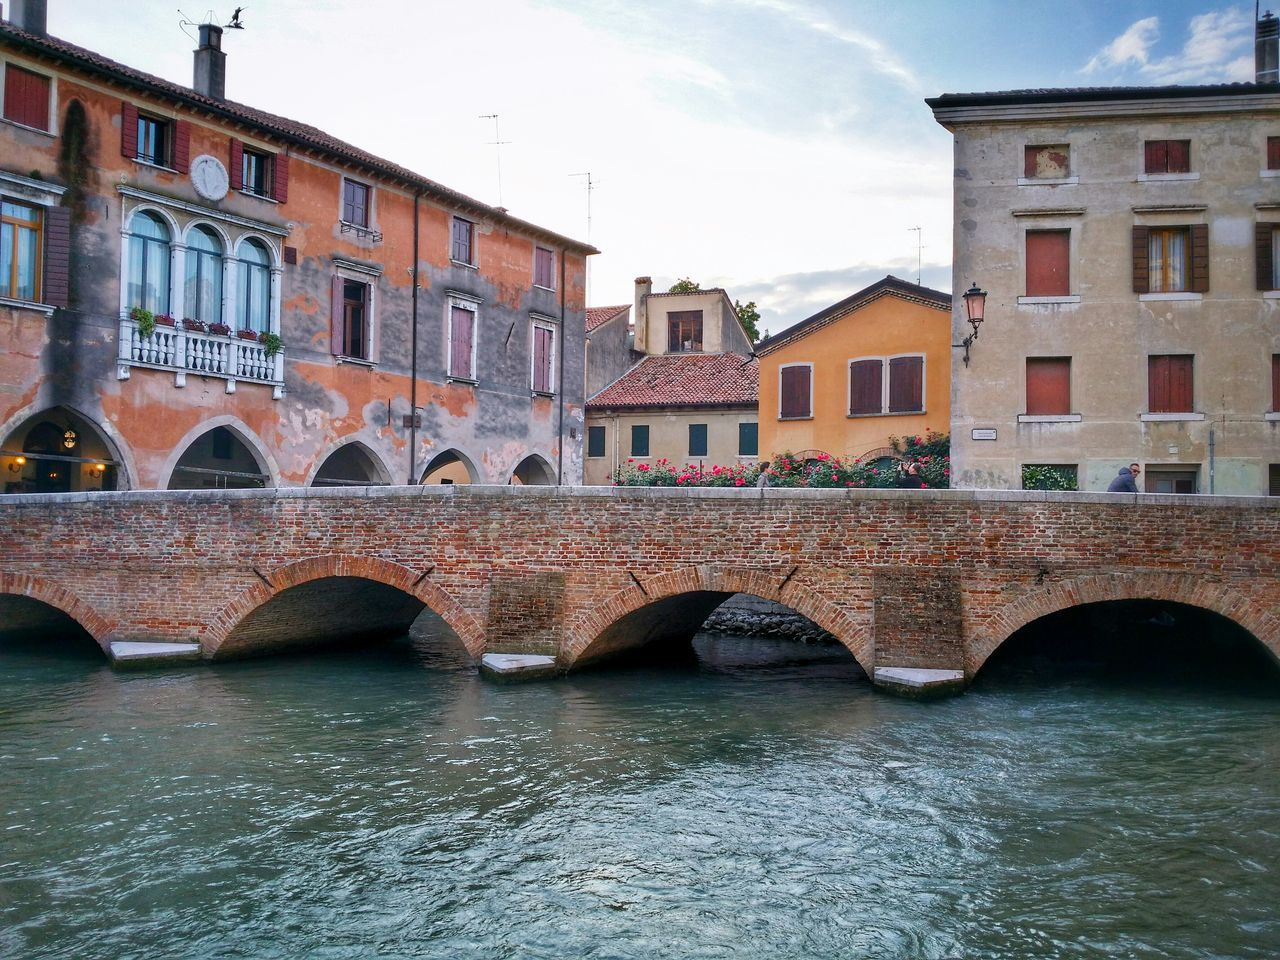 Treviso Veneto Italy Travel Photography Travel Voyage Traveling Mobile Photography Fine Art Backlight Architecture Historical Buildings Bridges Rivers Reflections And Shadows Mobile Editing